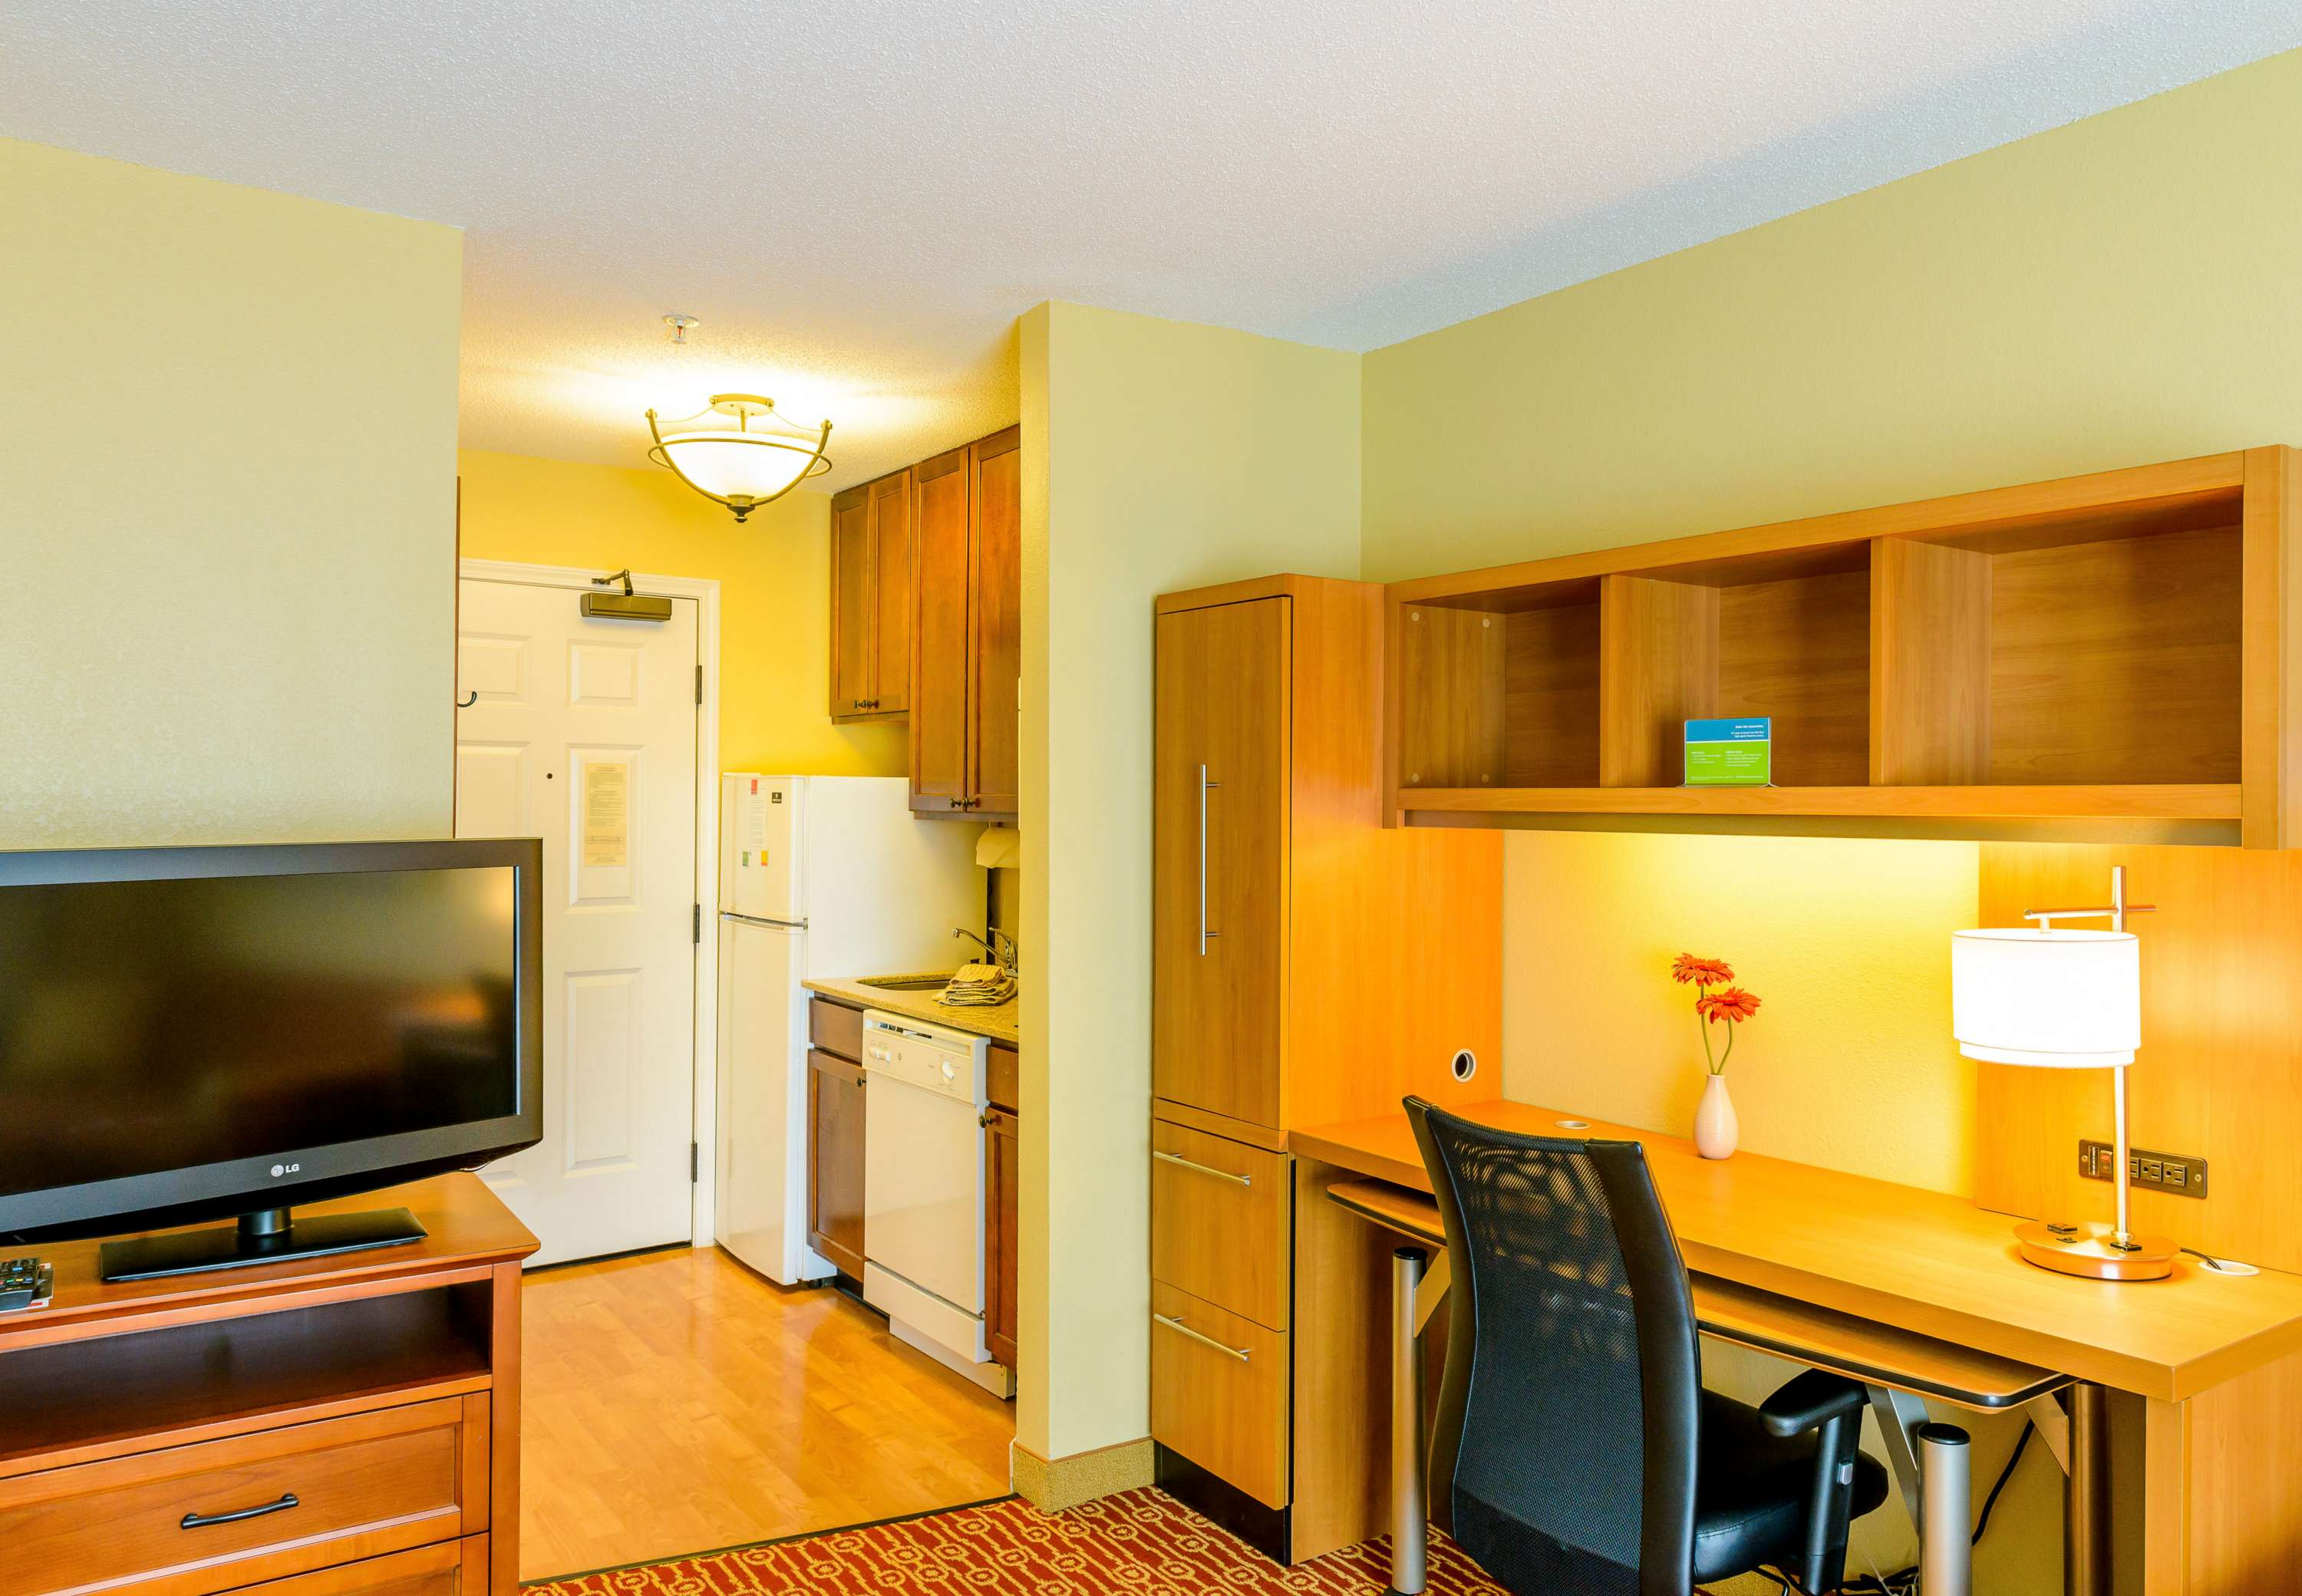 TownePlace Suites by Marriott Bowie Town Center image 3